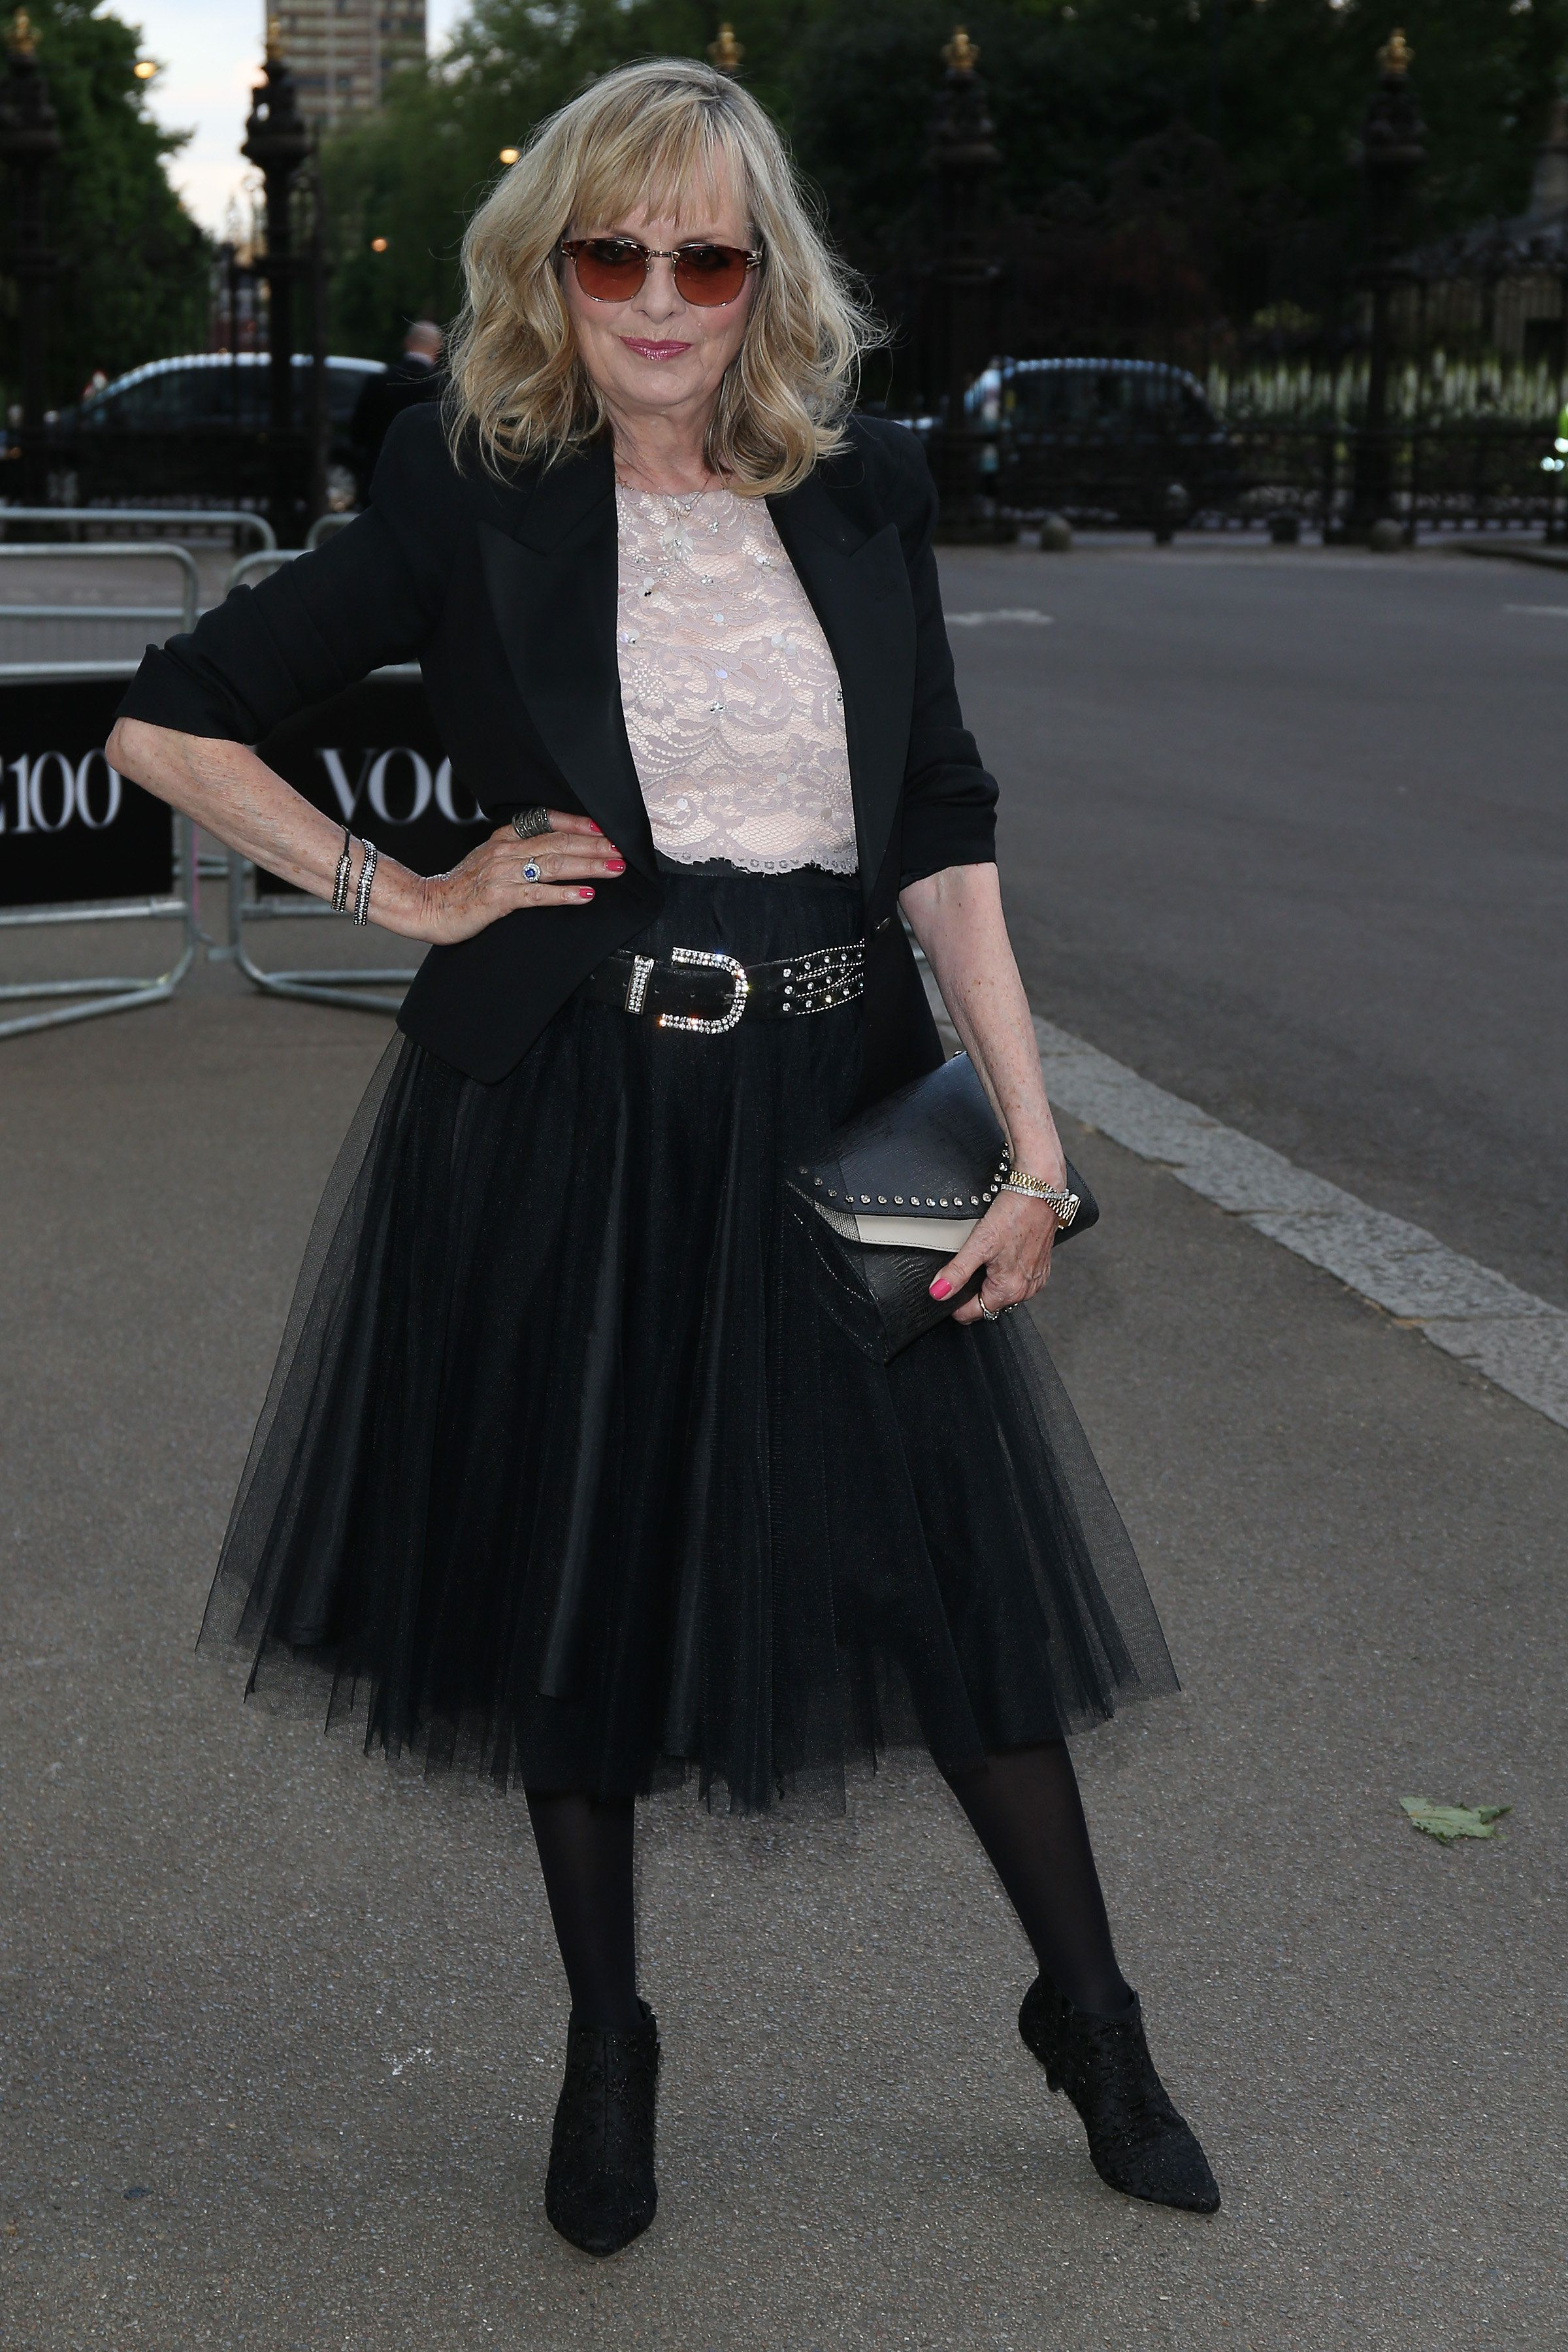 The model attends the Vogue 100 Gala Dinner at the East Albert Lawn in Kensington Gardens in London.